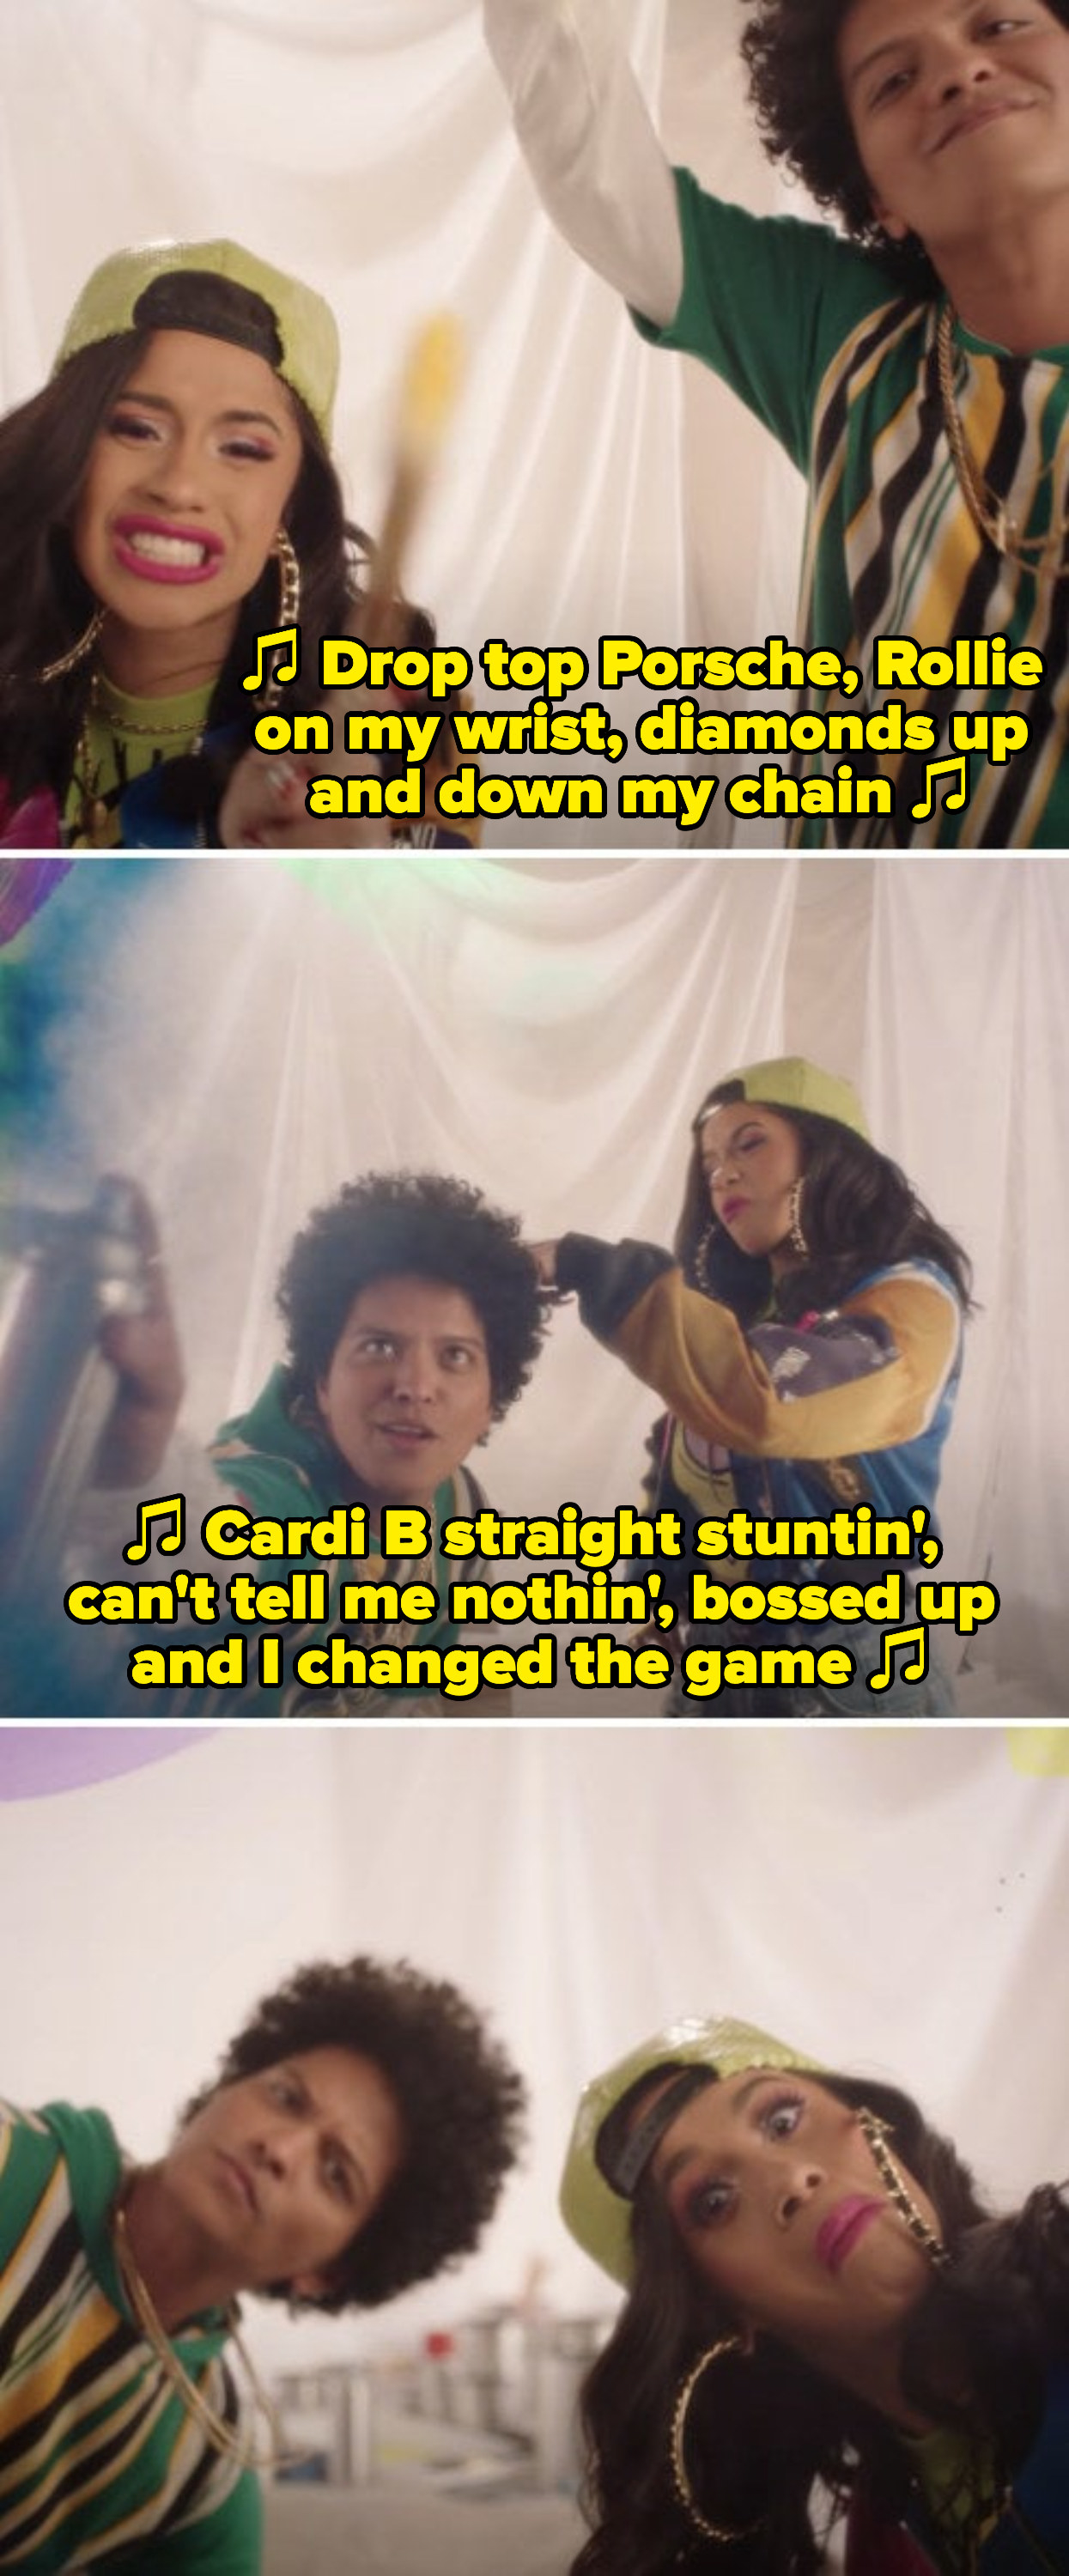 """Cardi B and Bruno Mars in their """"Finesse (Remix)"""" music video, rapping: """"Cardi B straight stunin', can't tell me nothin', bossed up and I changed the game"""""""